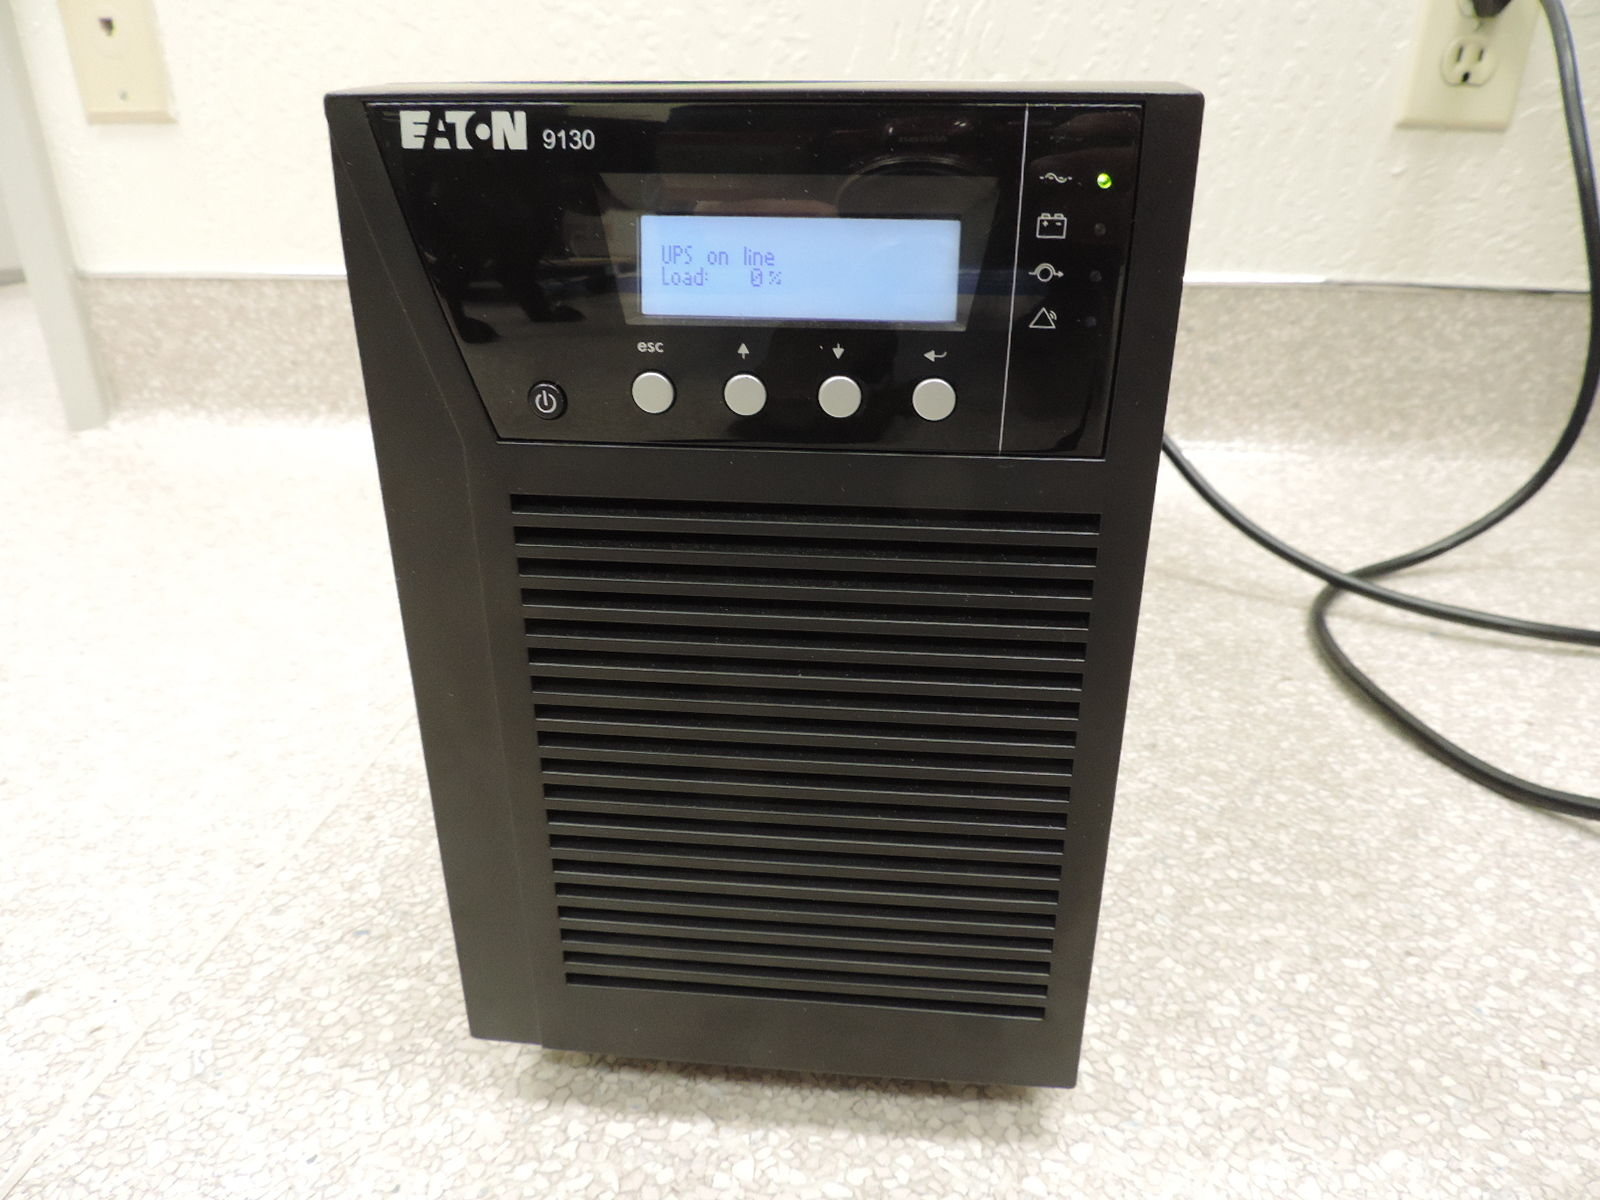 Eaton 9130 UPS Power Conditioner